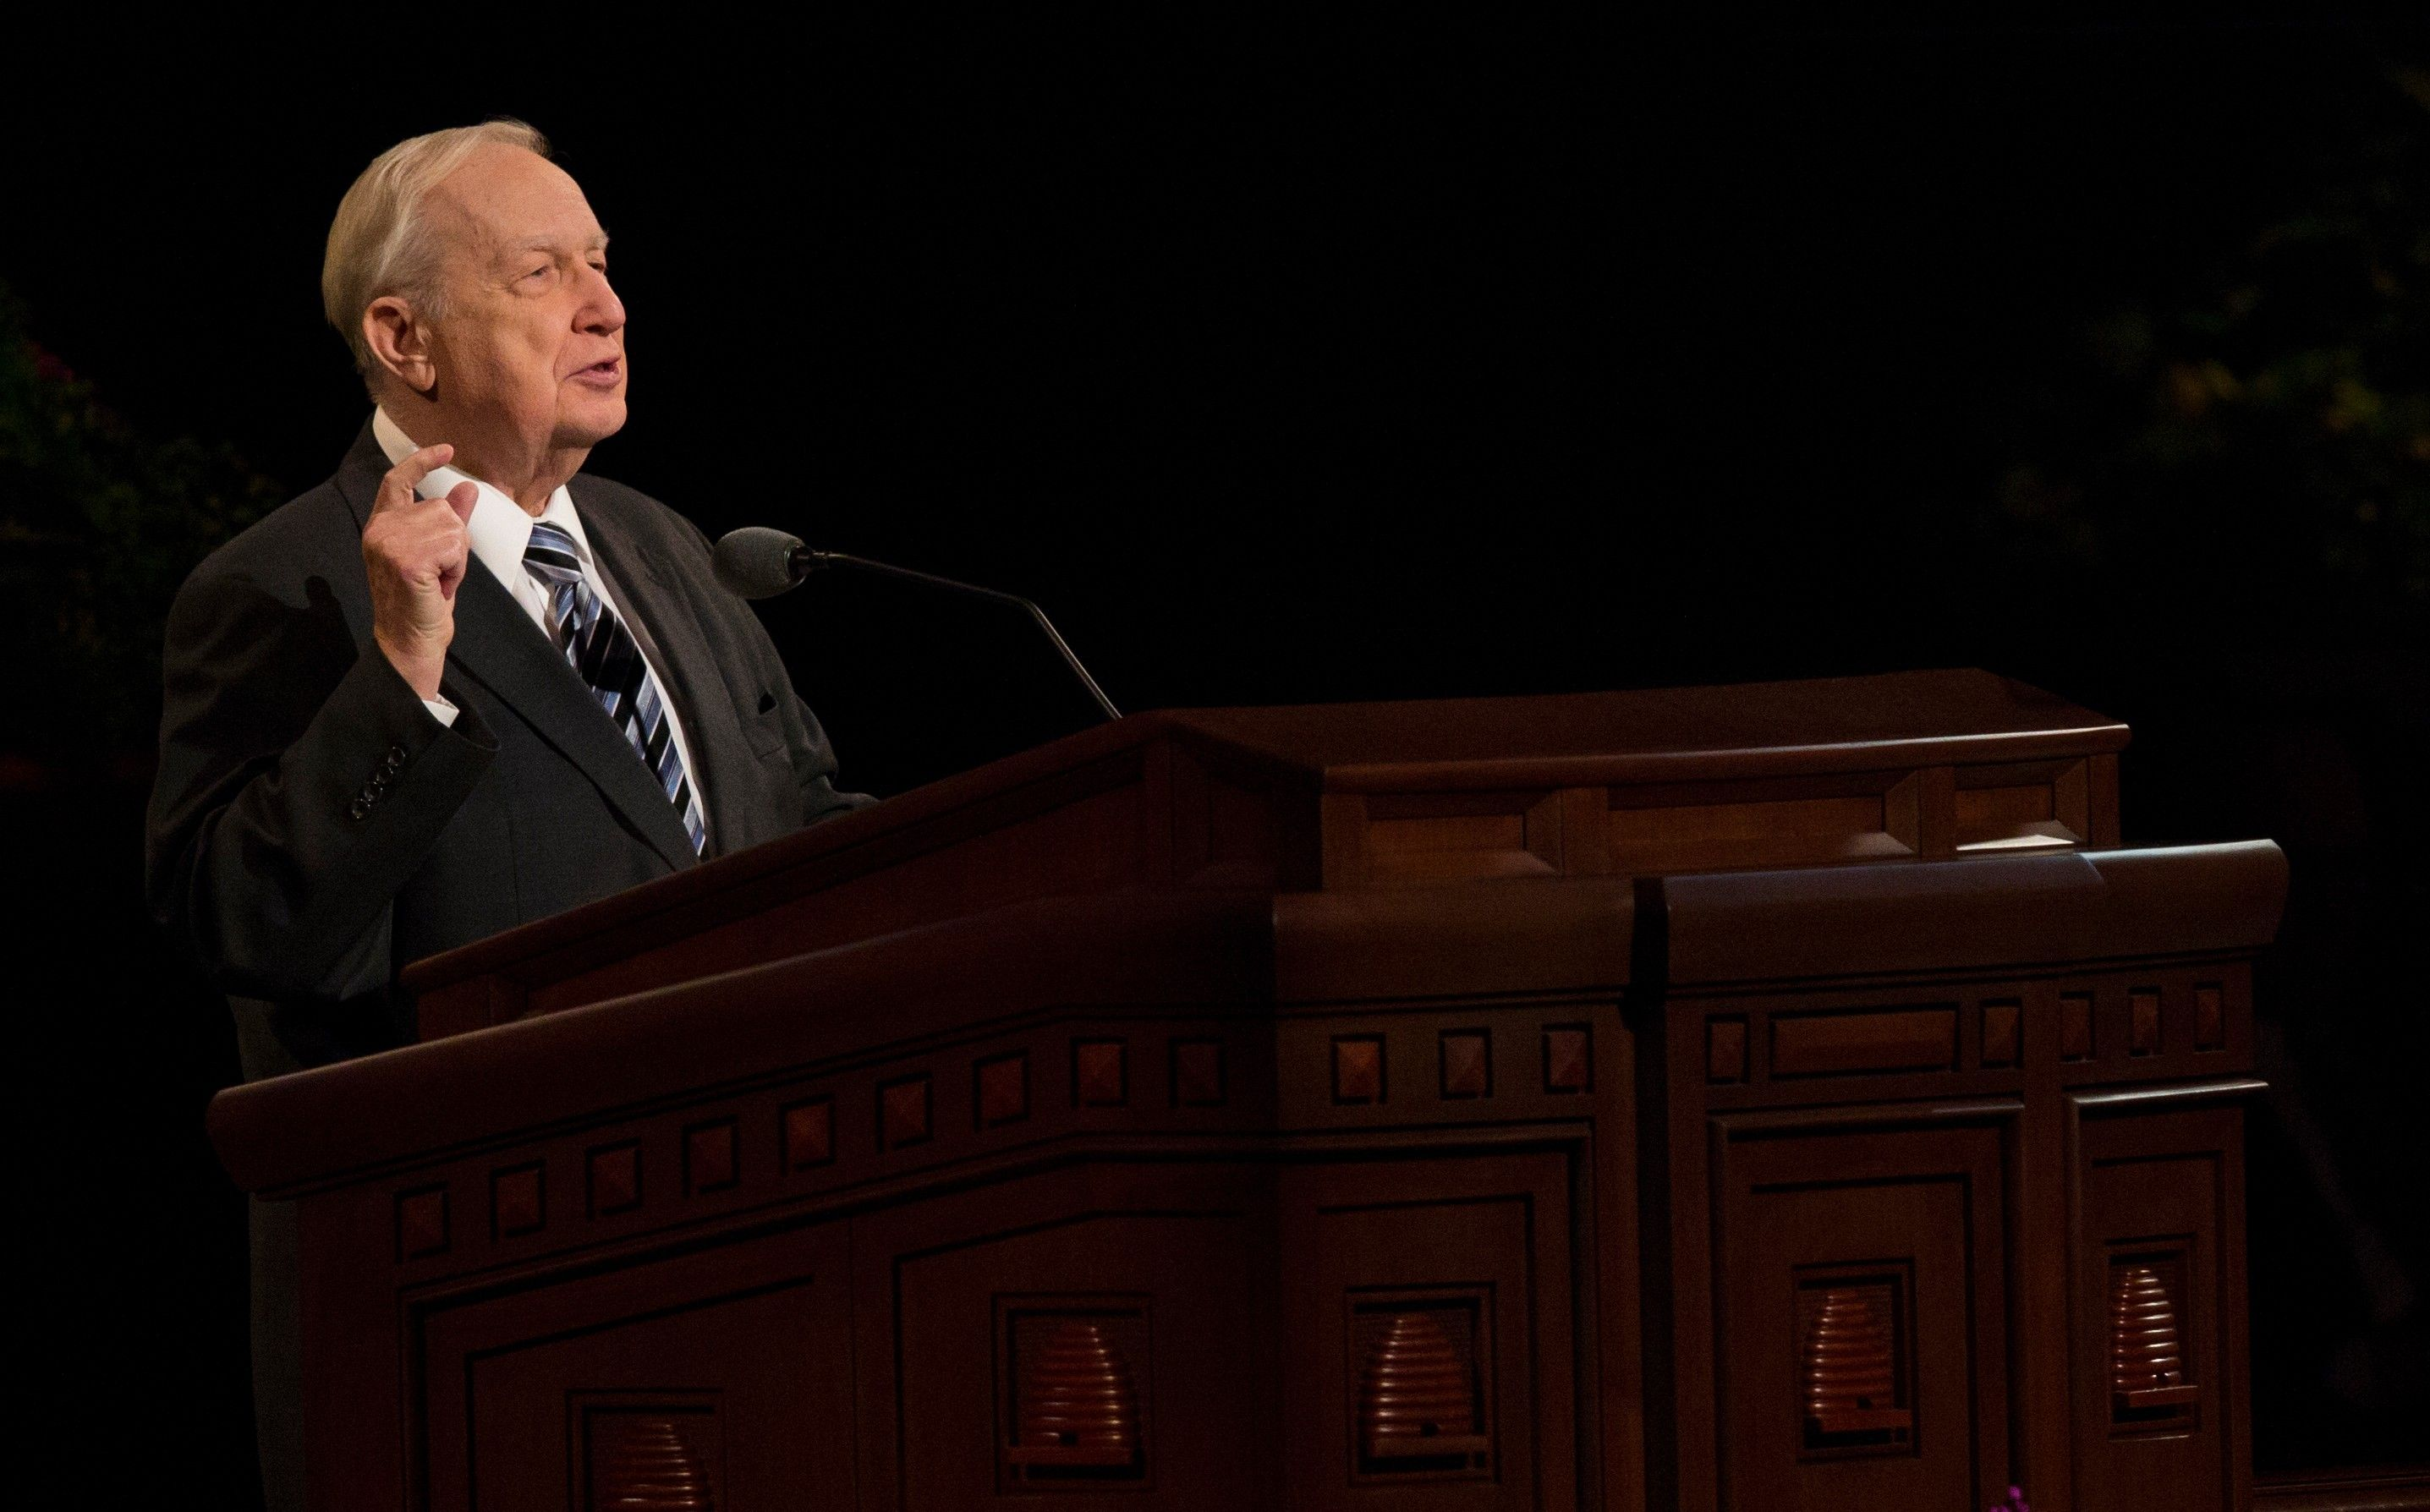 Richard G. Scott speaking at the pulpit in general conference.